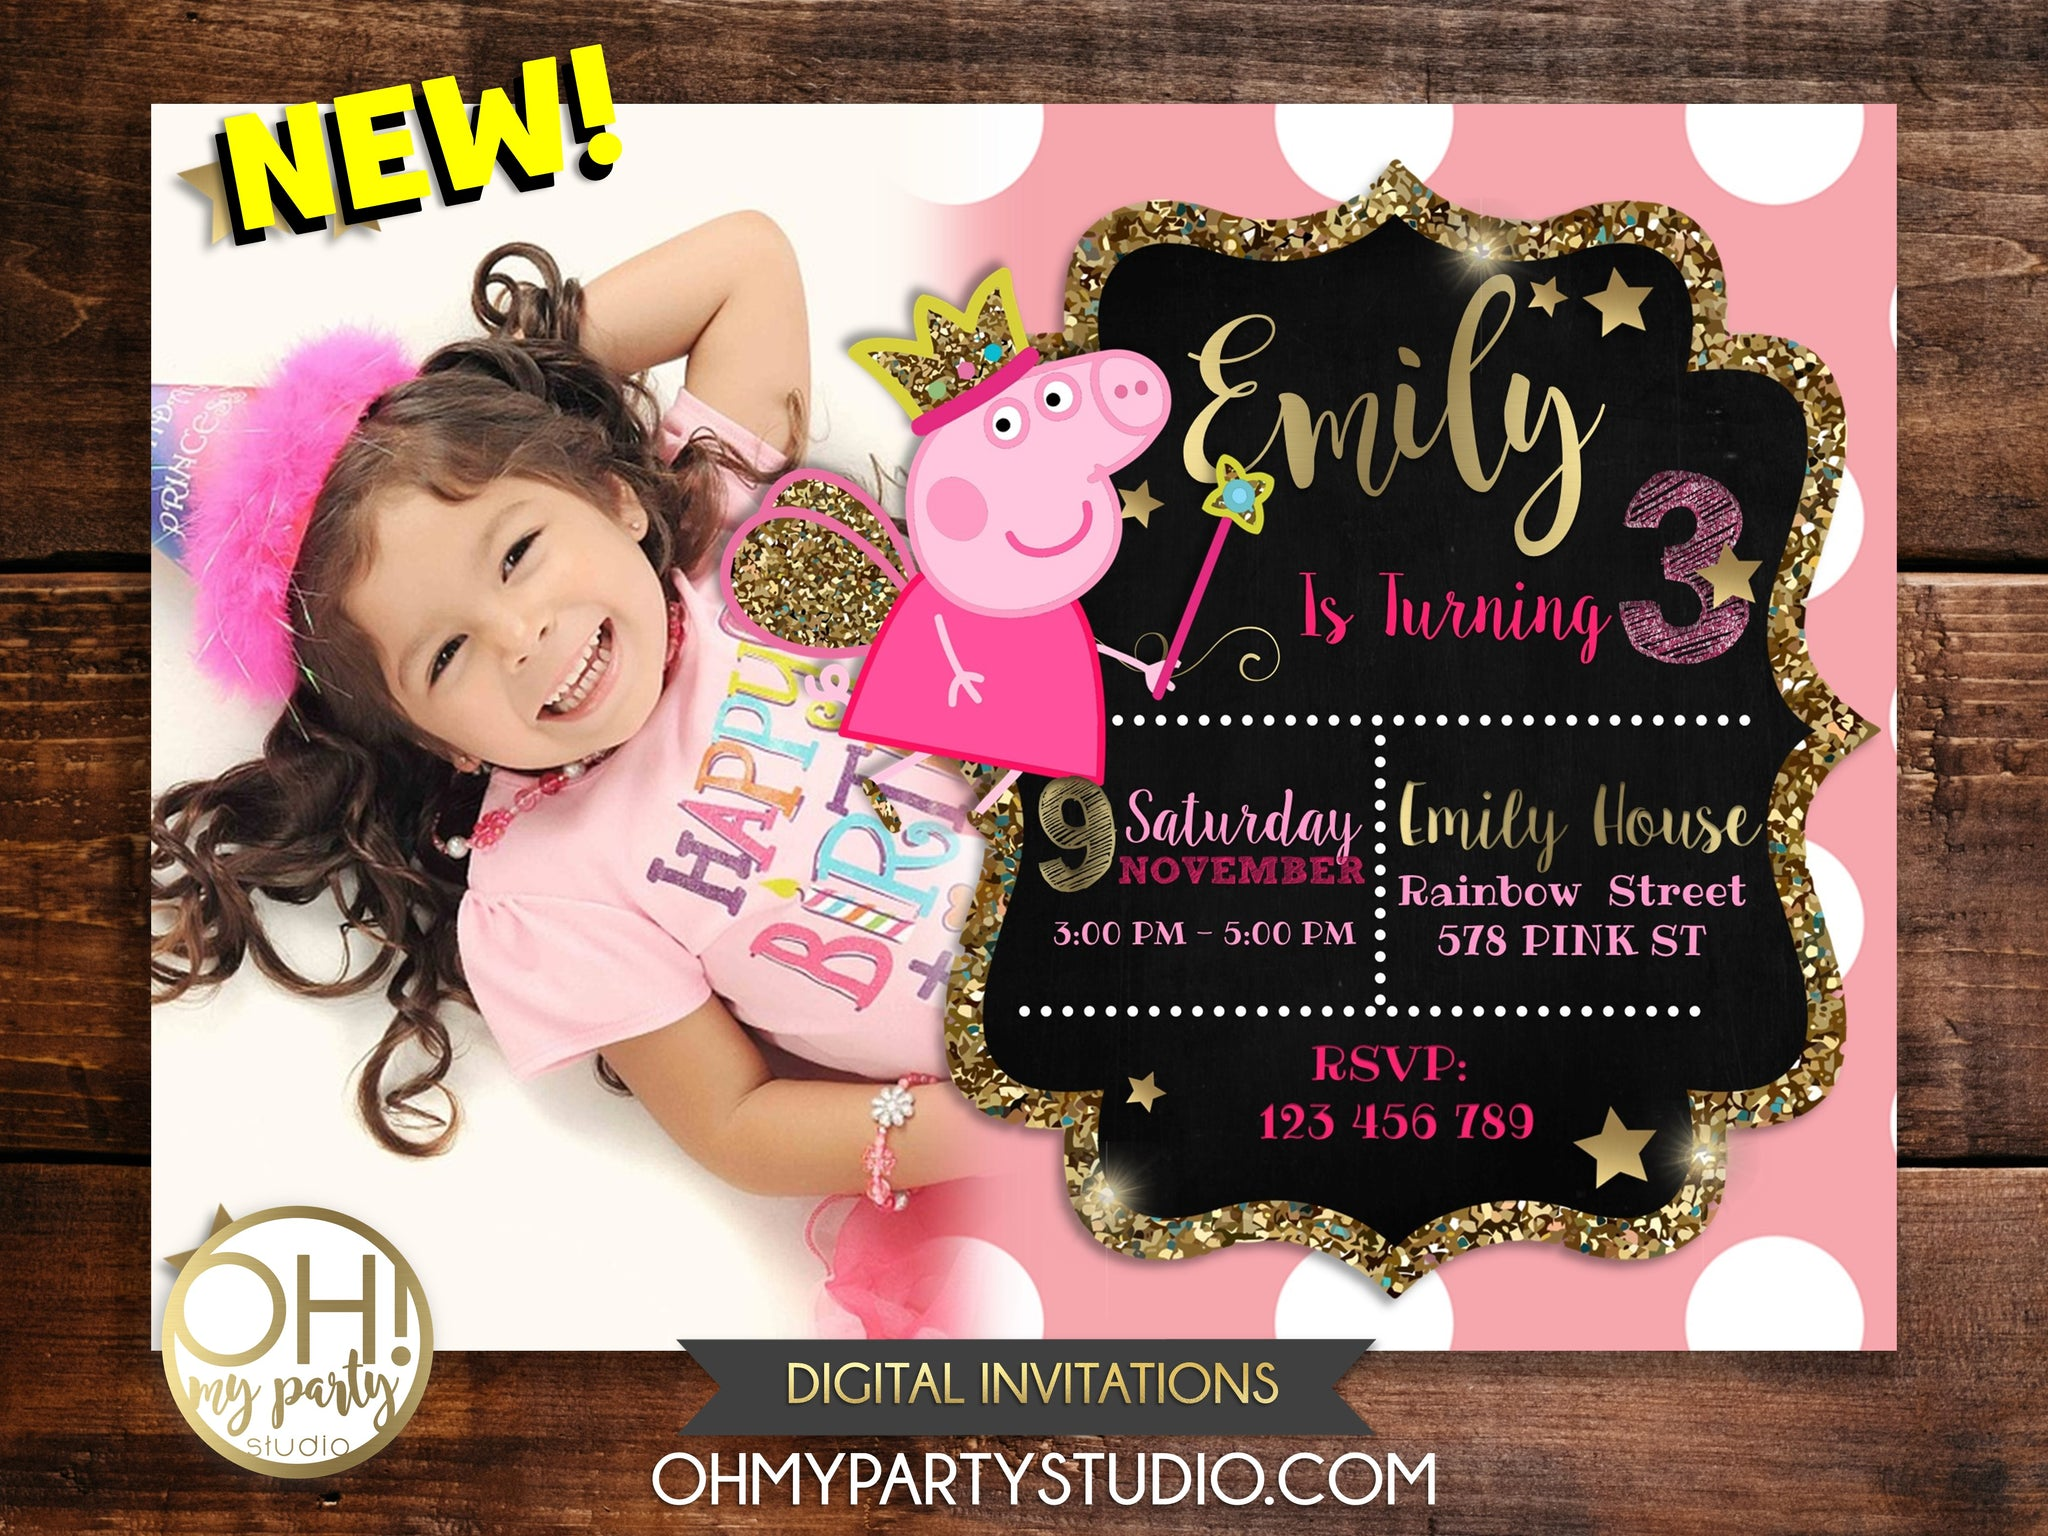 PEPPA PIG BIRTHDAY, PEPPA PIG PARTY, PEPPA PIG INVITATION, PEPPA PIG PRINTABLES, PEPPA PIG INVITATION DIGITAL, PEPPA PIG INVITATIONS, PEPPA PIG POOL PARTY, PEPPA PIG PARTY IDEAS, PEPPA PIG PARTY THEME